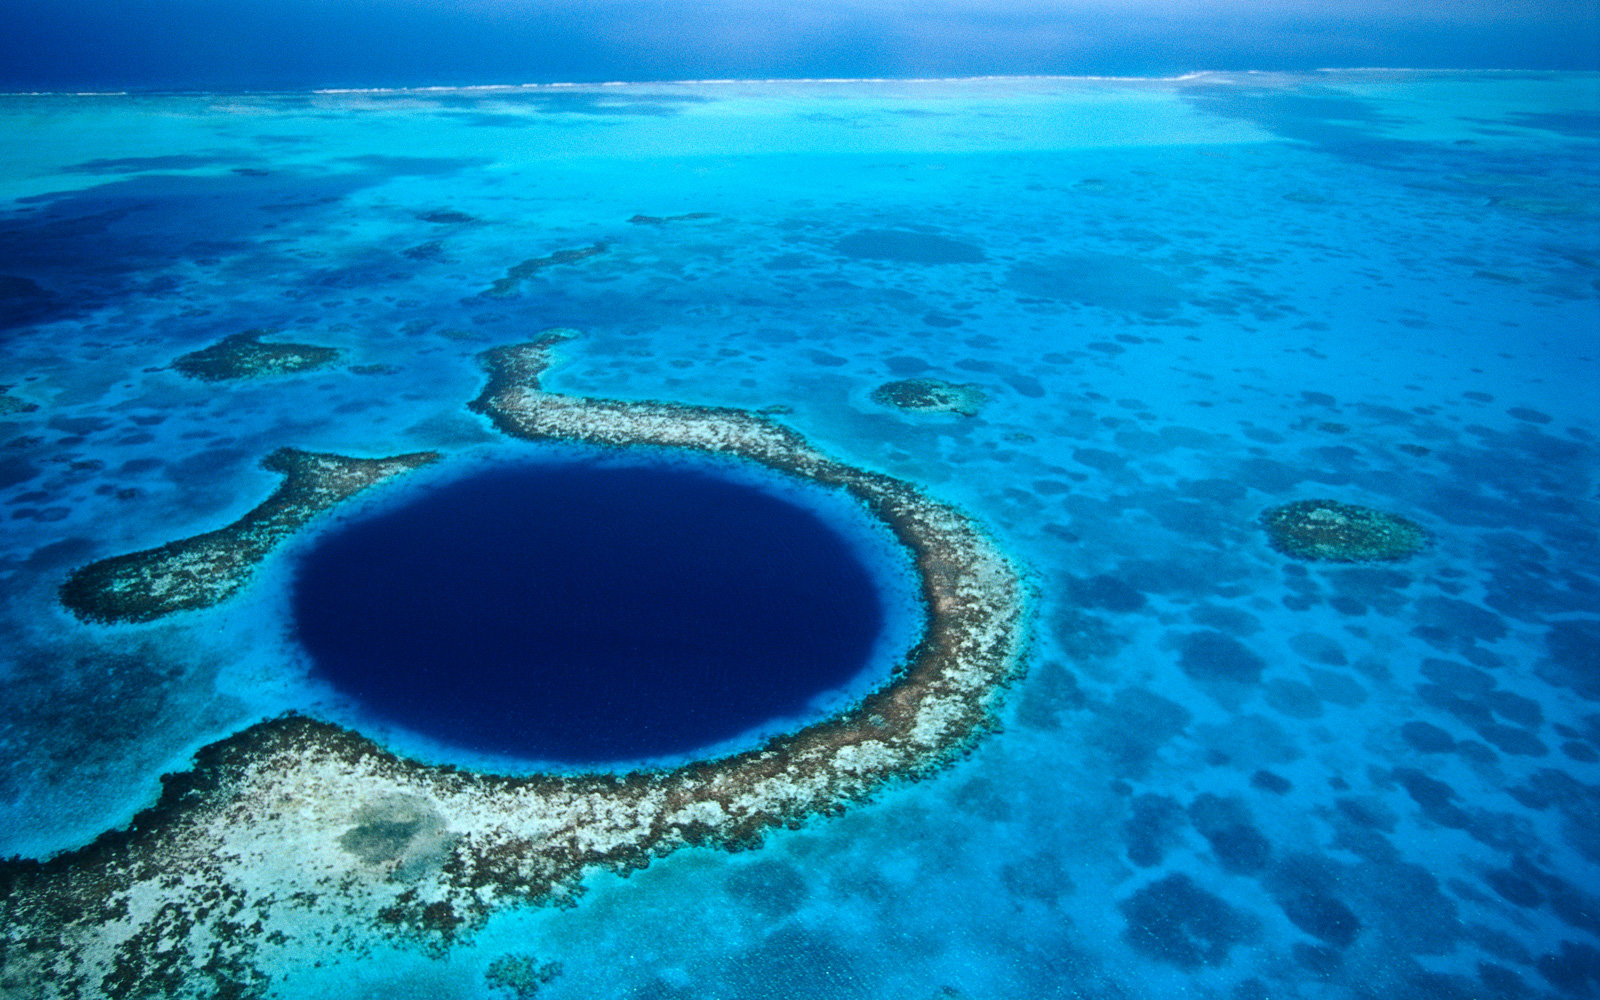 The Great Blue Hole in Belize Is One of the World's Most Gorgeous Mysteries